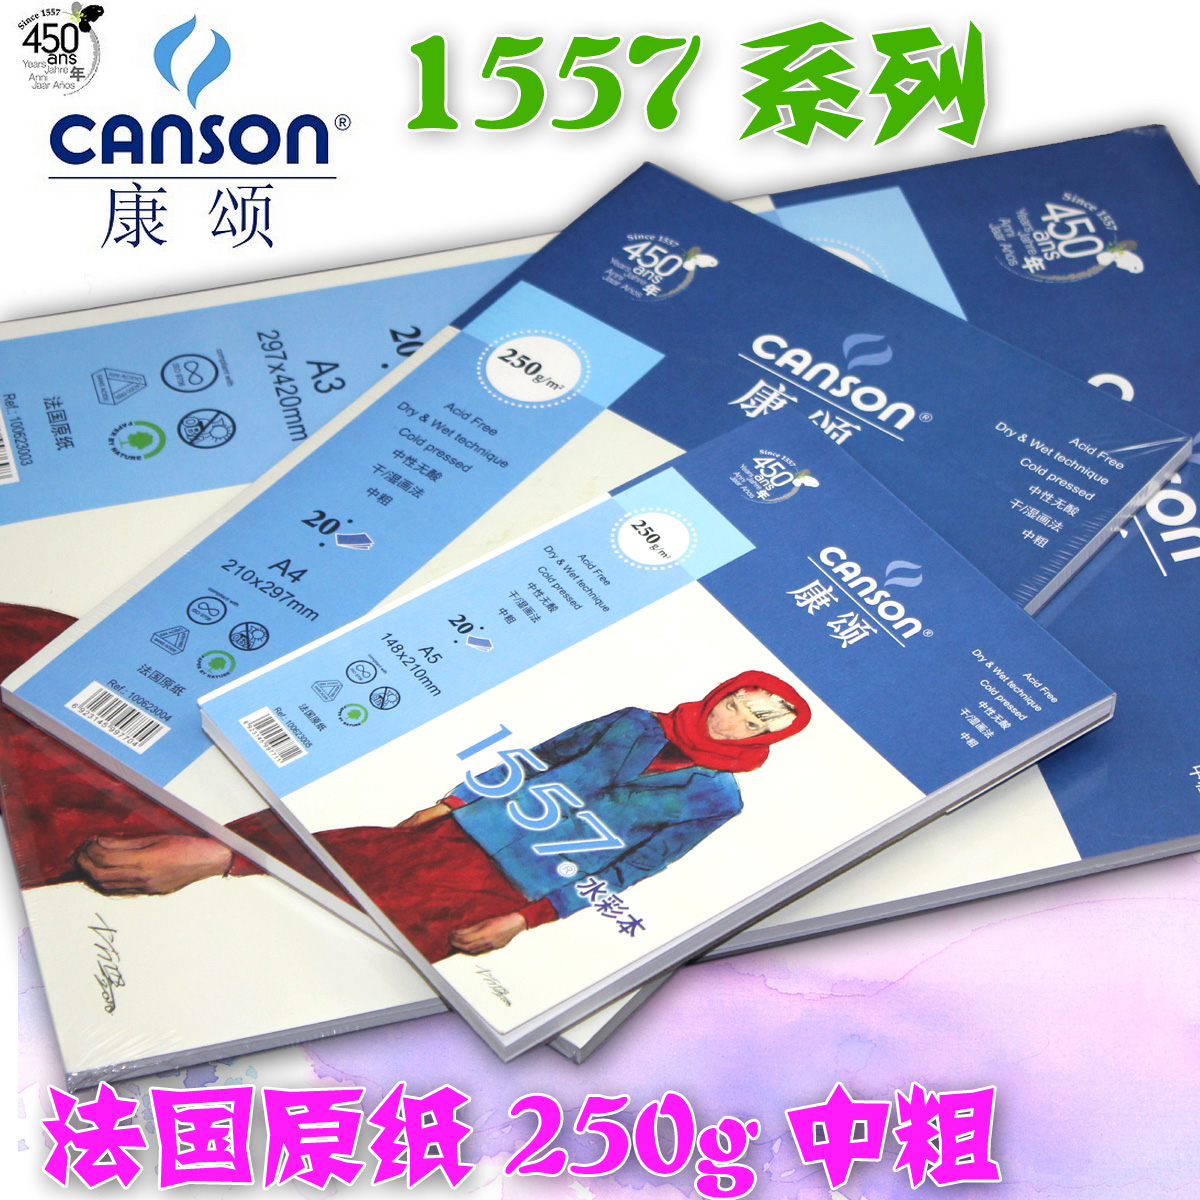 France canson 1557 canson watercolor paper watercolor sketchbook bef0re they casnon texture sided a5 a4 a3 optional